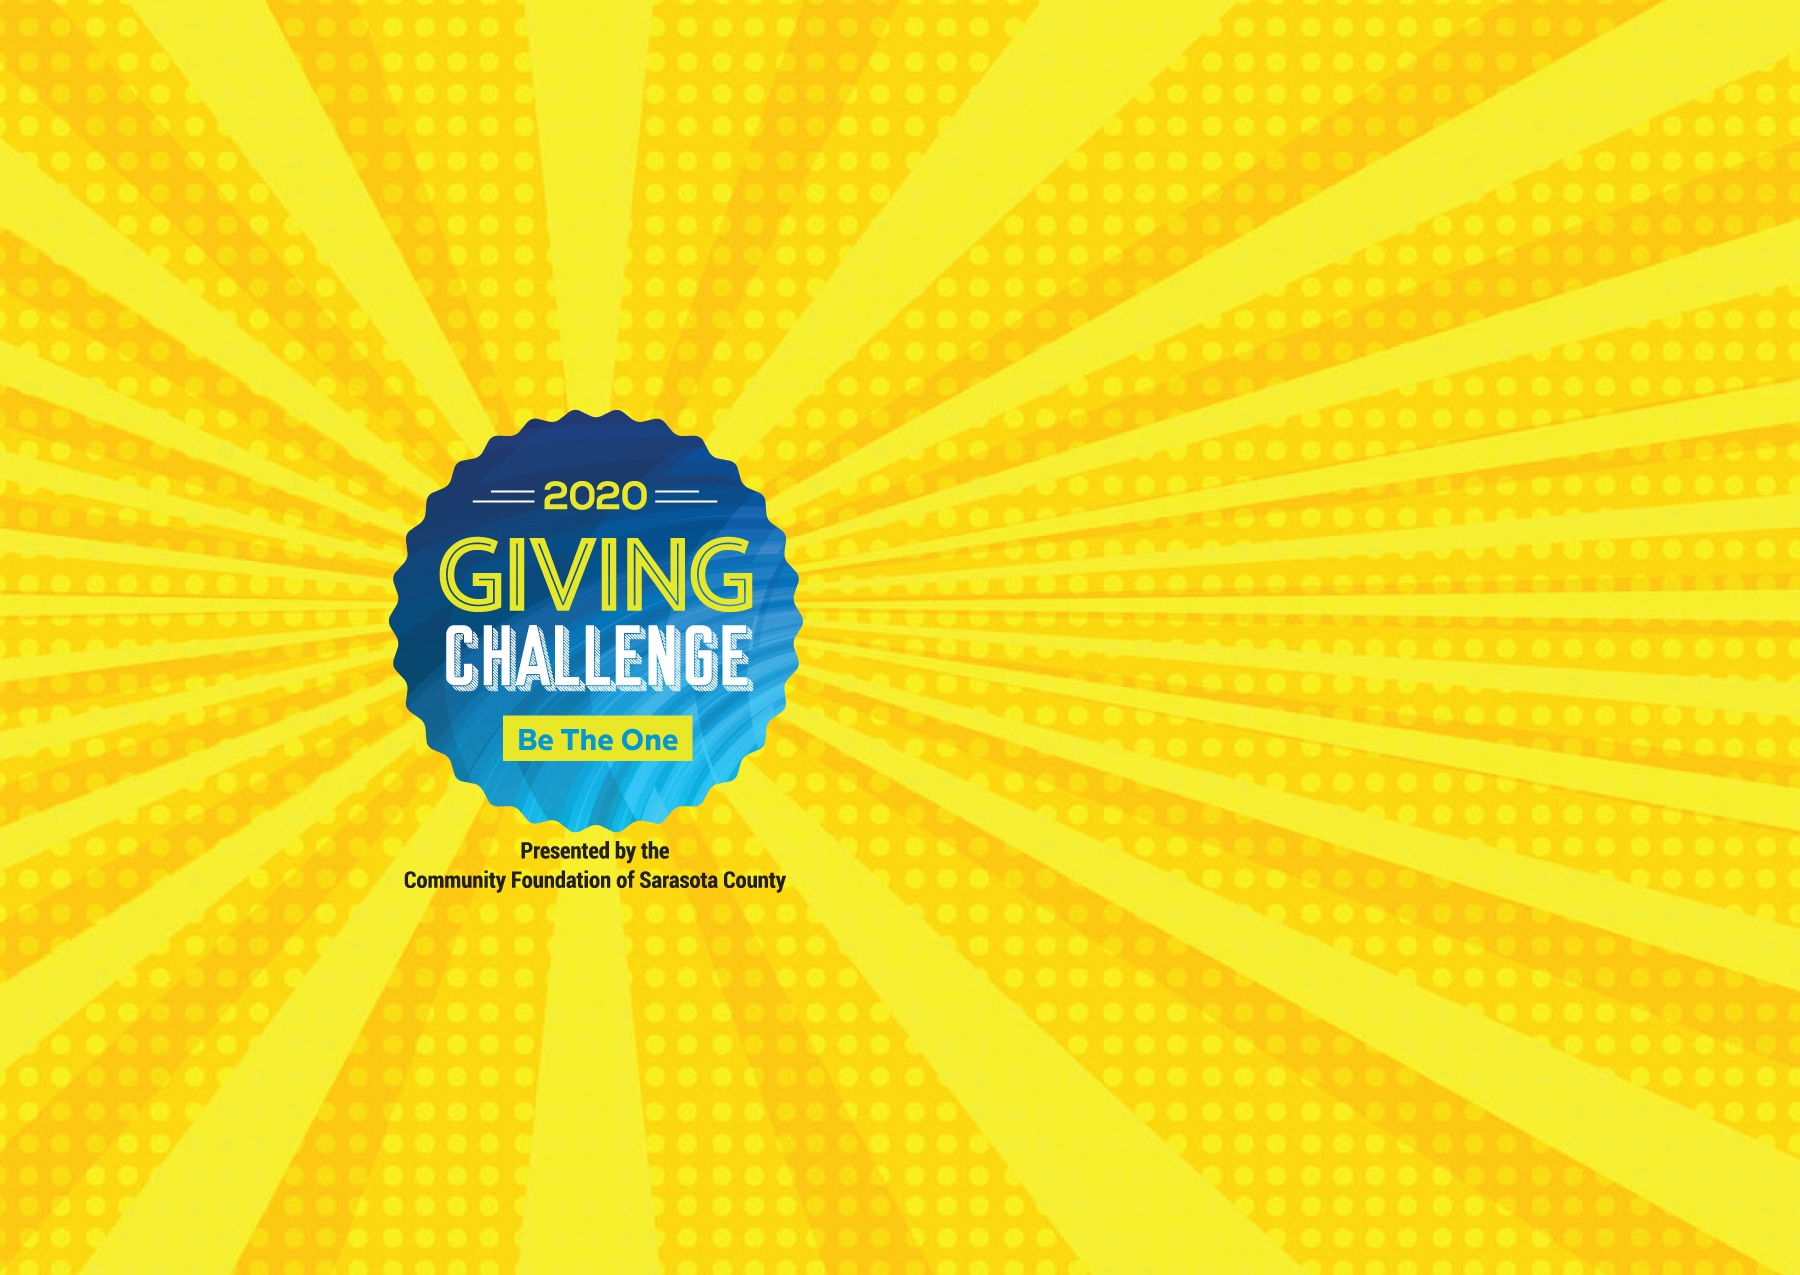 Final Steps to Success for the Giving Challenge